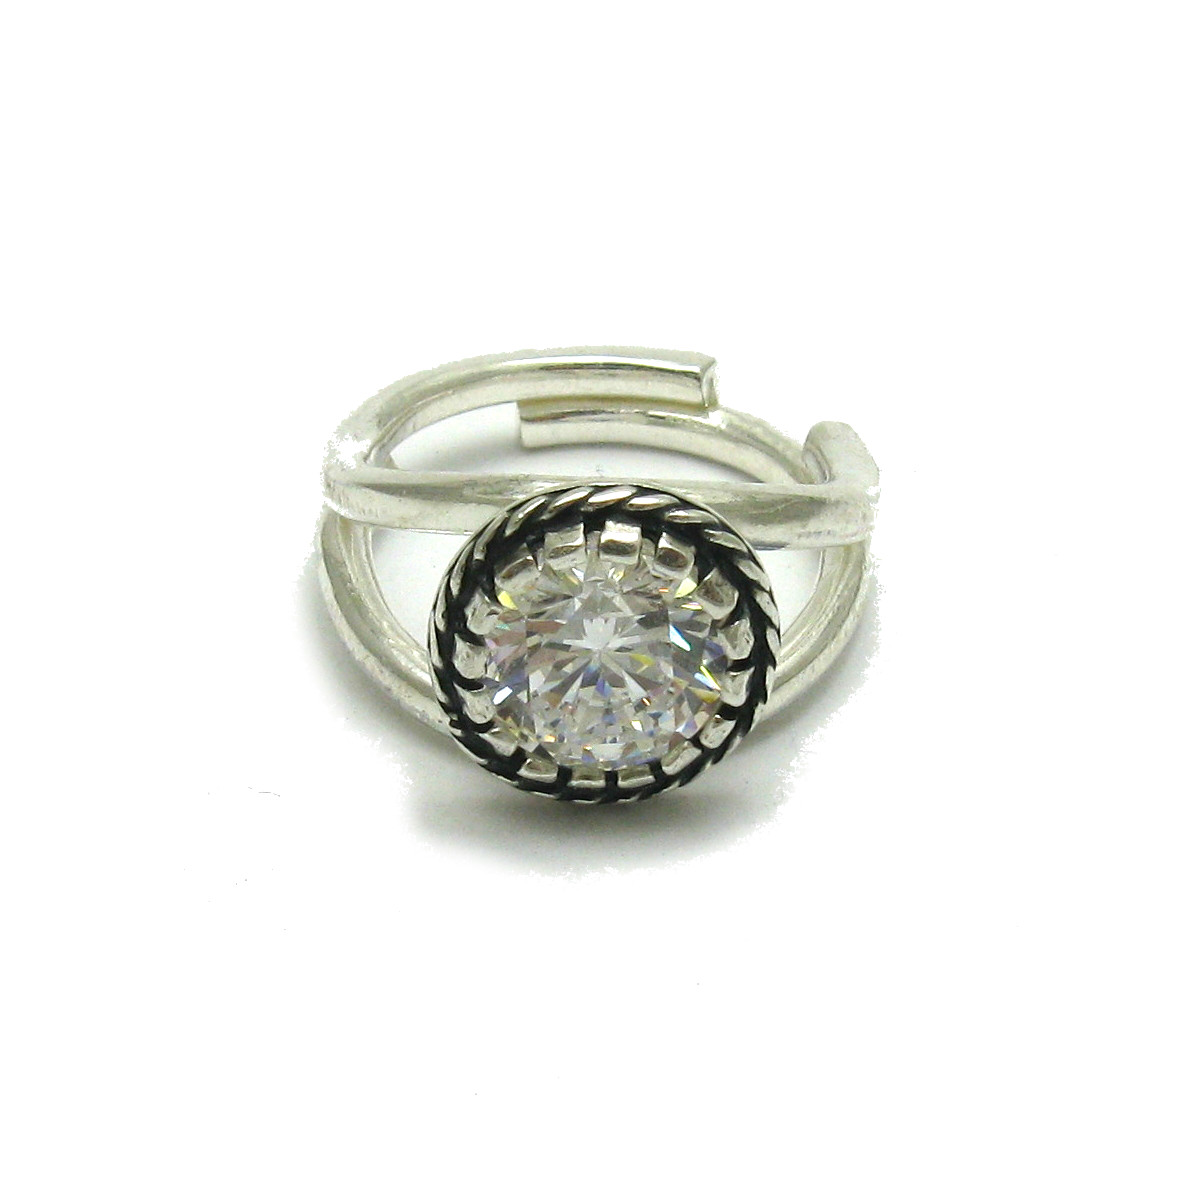 Silver ring - R001653